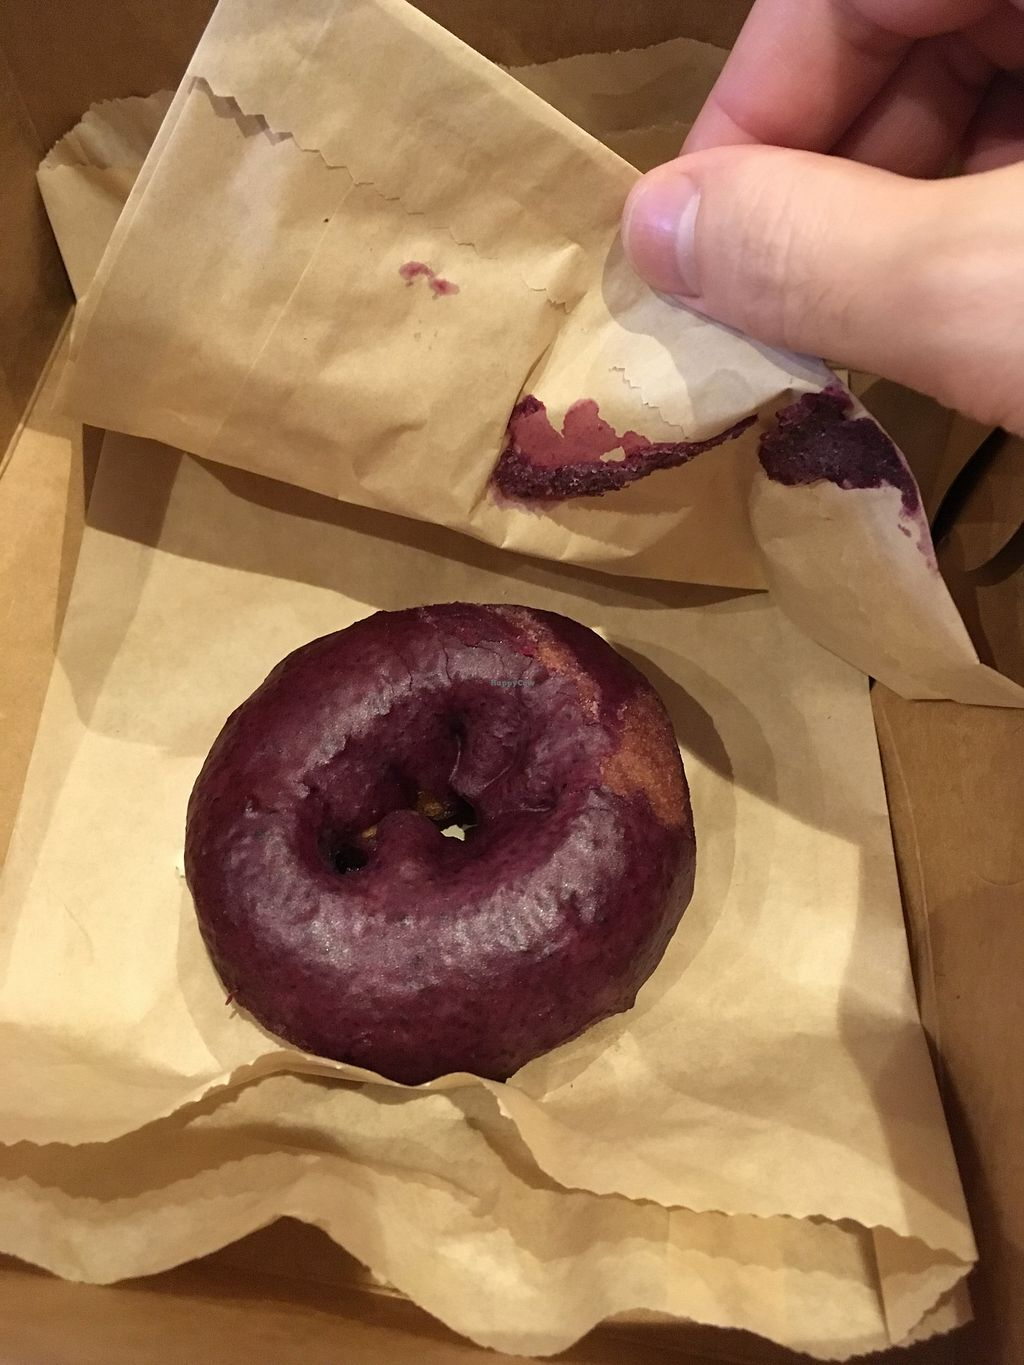 """Photo of Blue Star Donuts  - Hawthorne   by <a href=""""/members/profile/slo0go"""">slo0go</a> <br/>Blueberry cake <br/> March 23, 2018  - <a href='/contact/abuse/image/76402/374623'>Report</a>"""